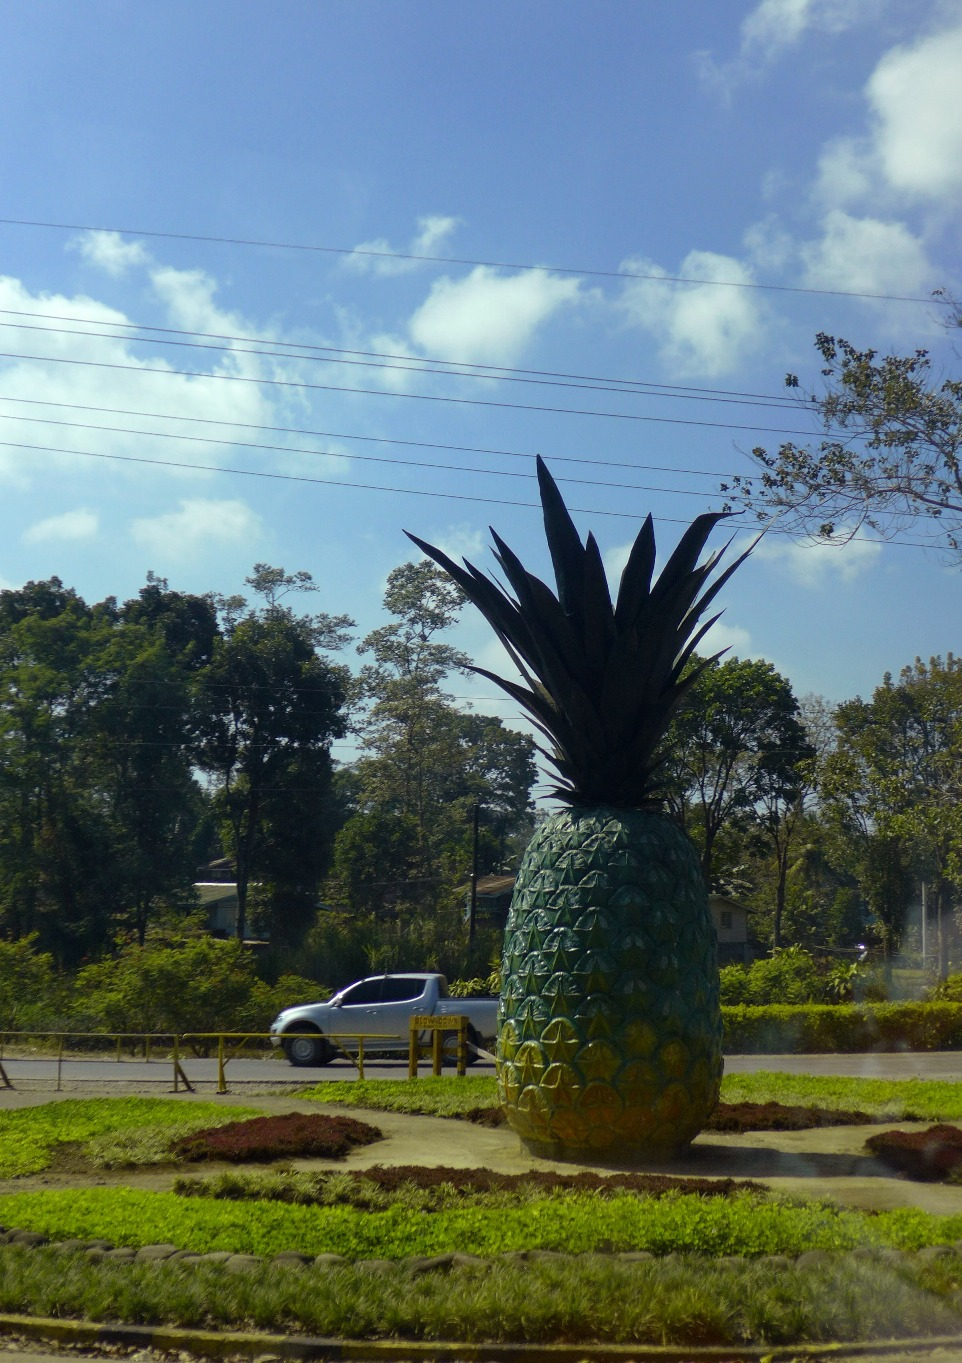 Del Monte Pineapple Plantation, Camp Philips, Bukidnon; Del Monte Clubhouse; D.I.Y. Manolo Fortich; Dahilayan Adventure Park day trip itinerary; Dahilayan Adventure Park activities; Del Monte Clubhouse Bukidnon; What to do in Bukidnon; Bukidnon travel blog